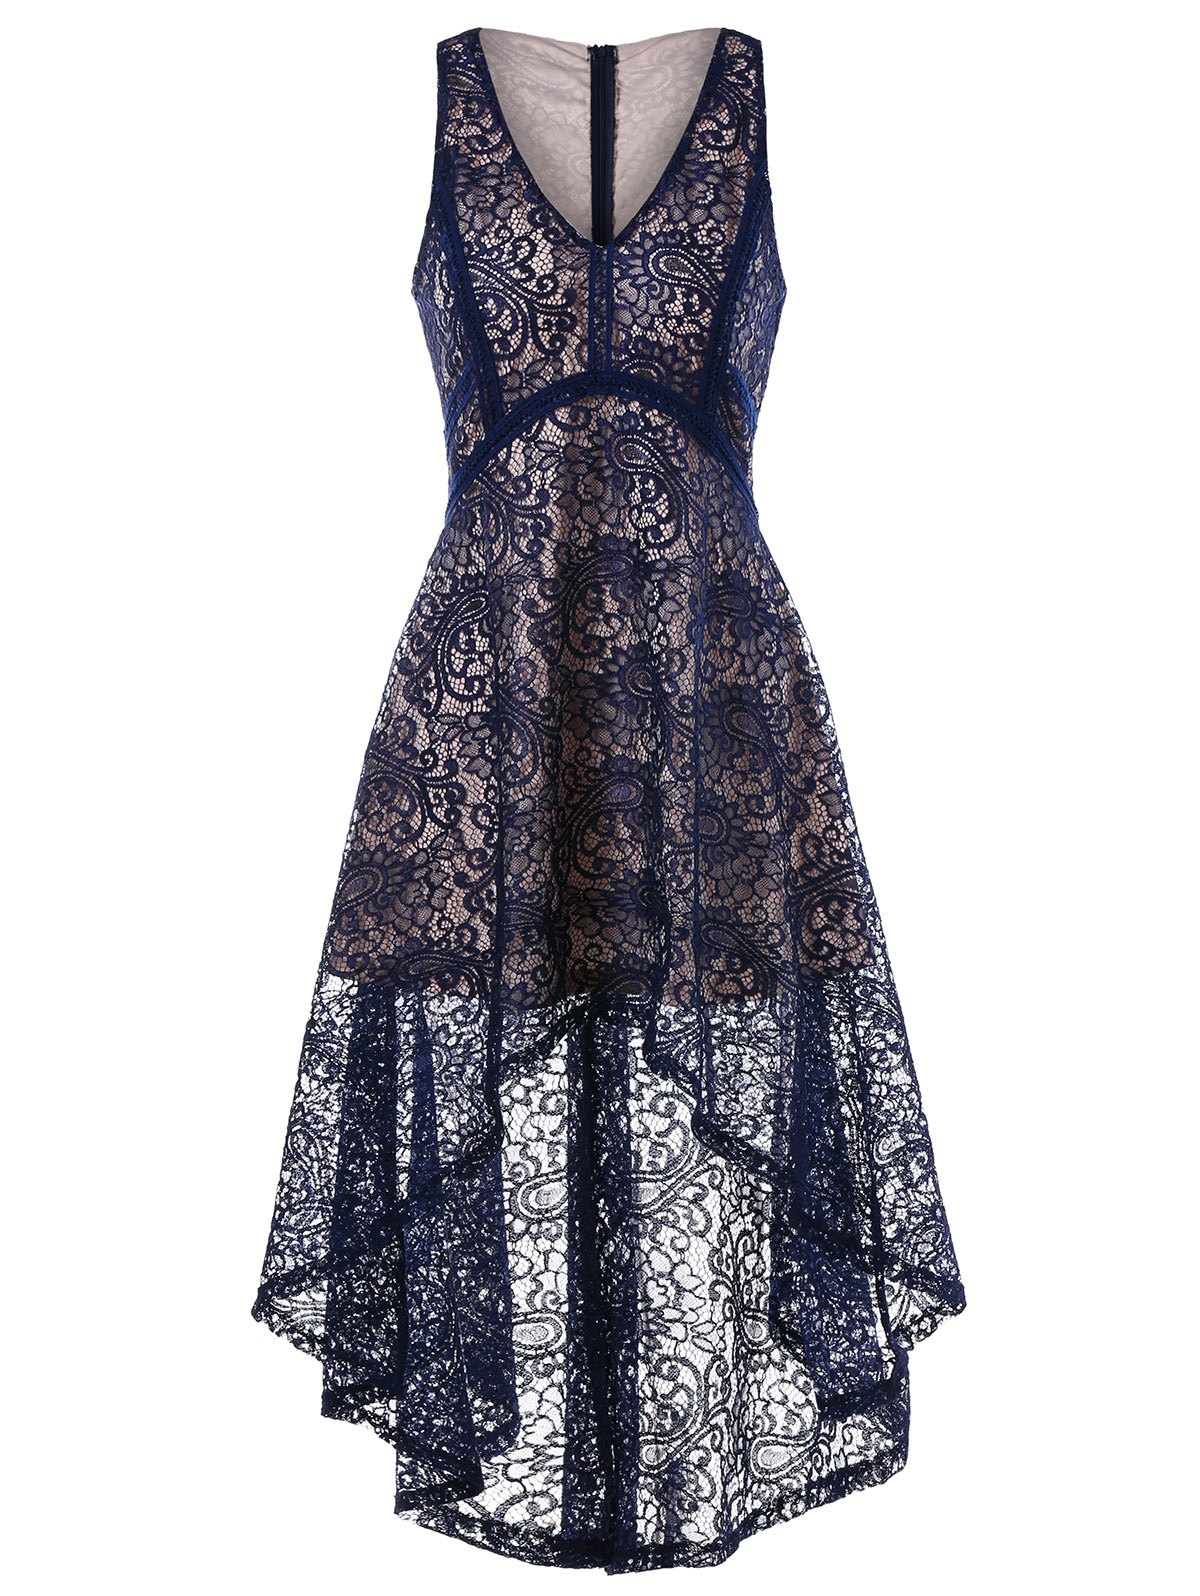 Unique Sleeveless Asymmetrical Lace Dress